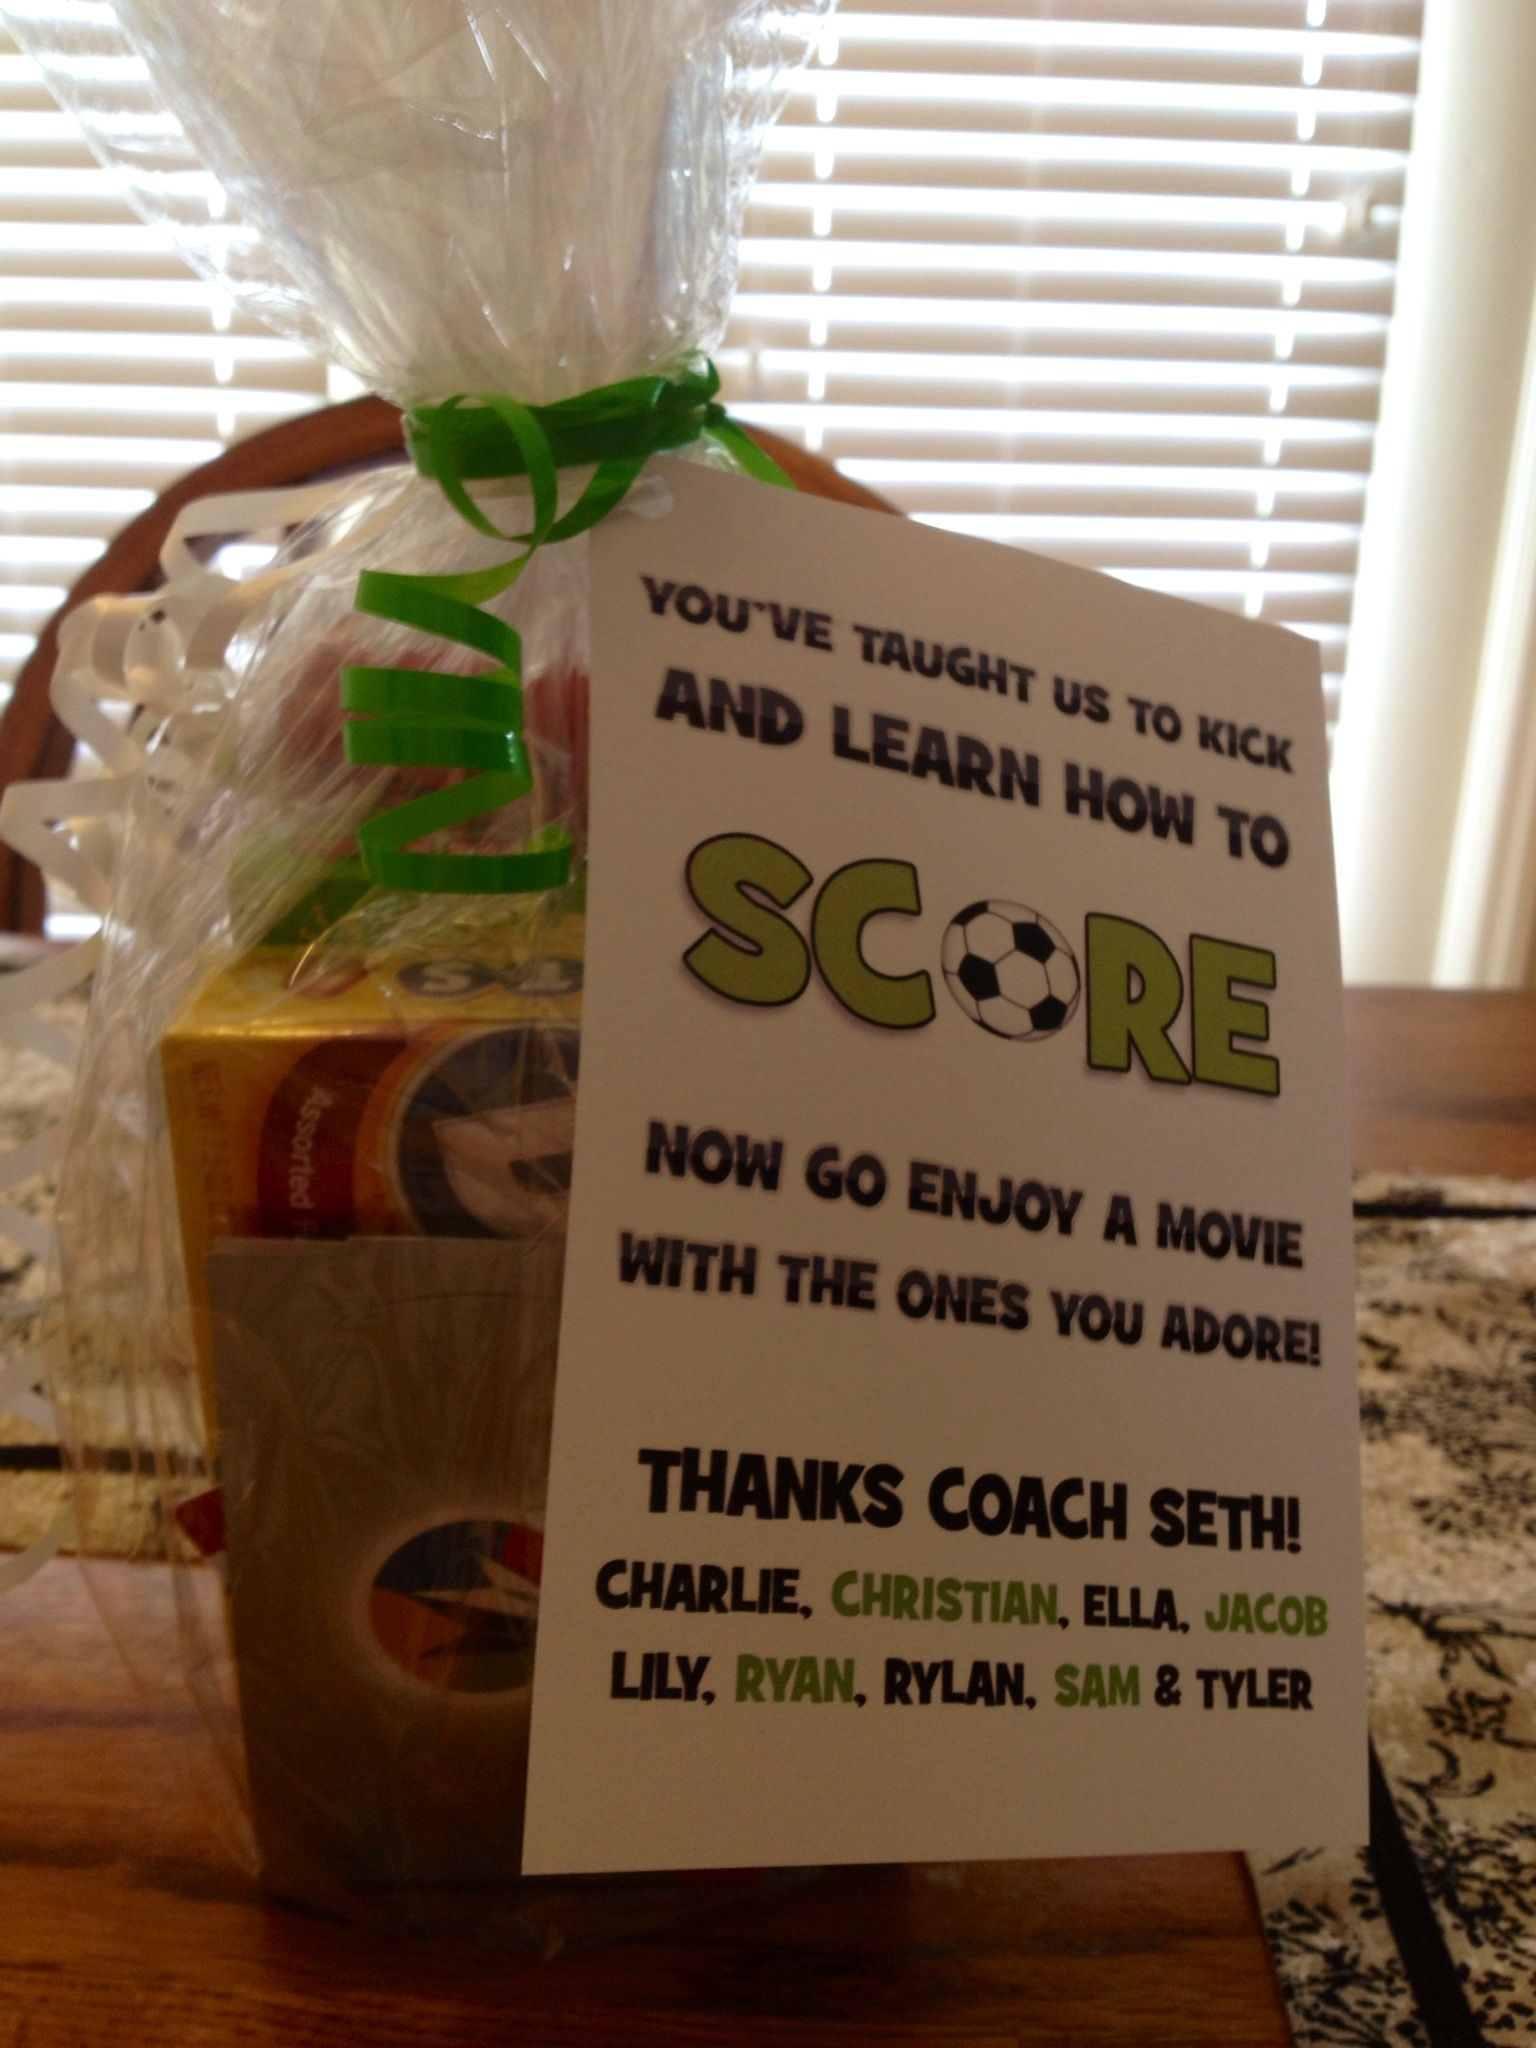 Found Ideas On Pinterest And Made For Our Soccer Coach Make Card On Computer Personalize Throw In M Soccer Coach Gifts Coach Appreciation Gifts Soccer Gifts